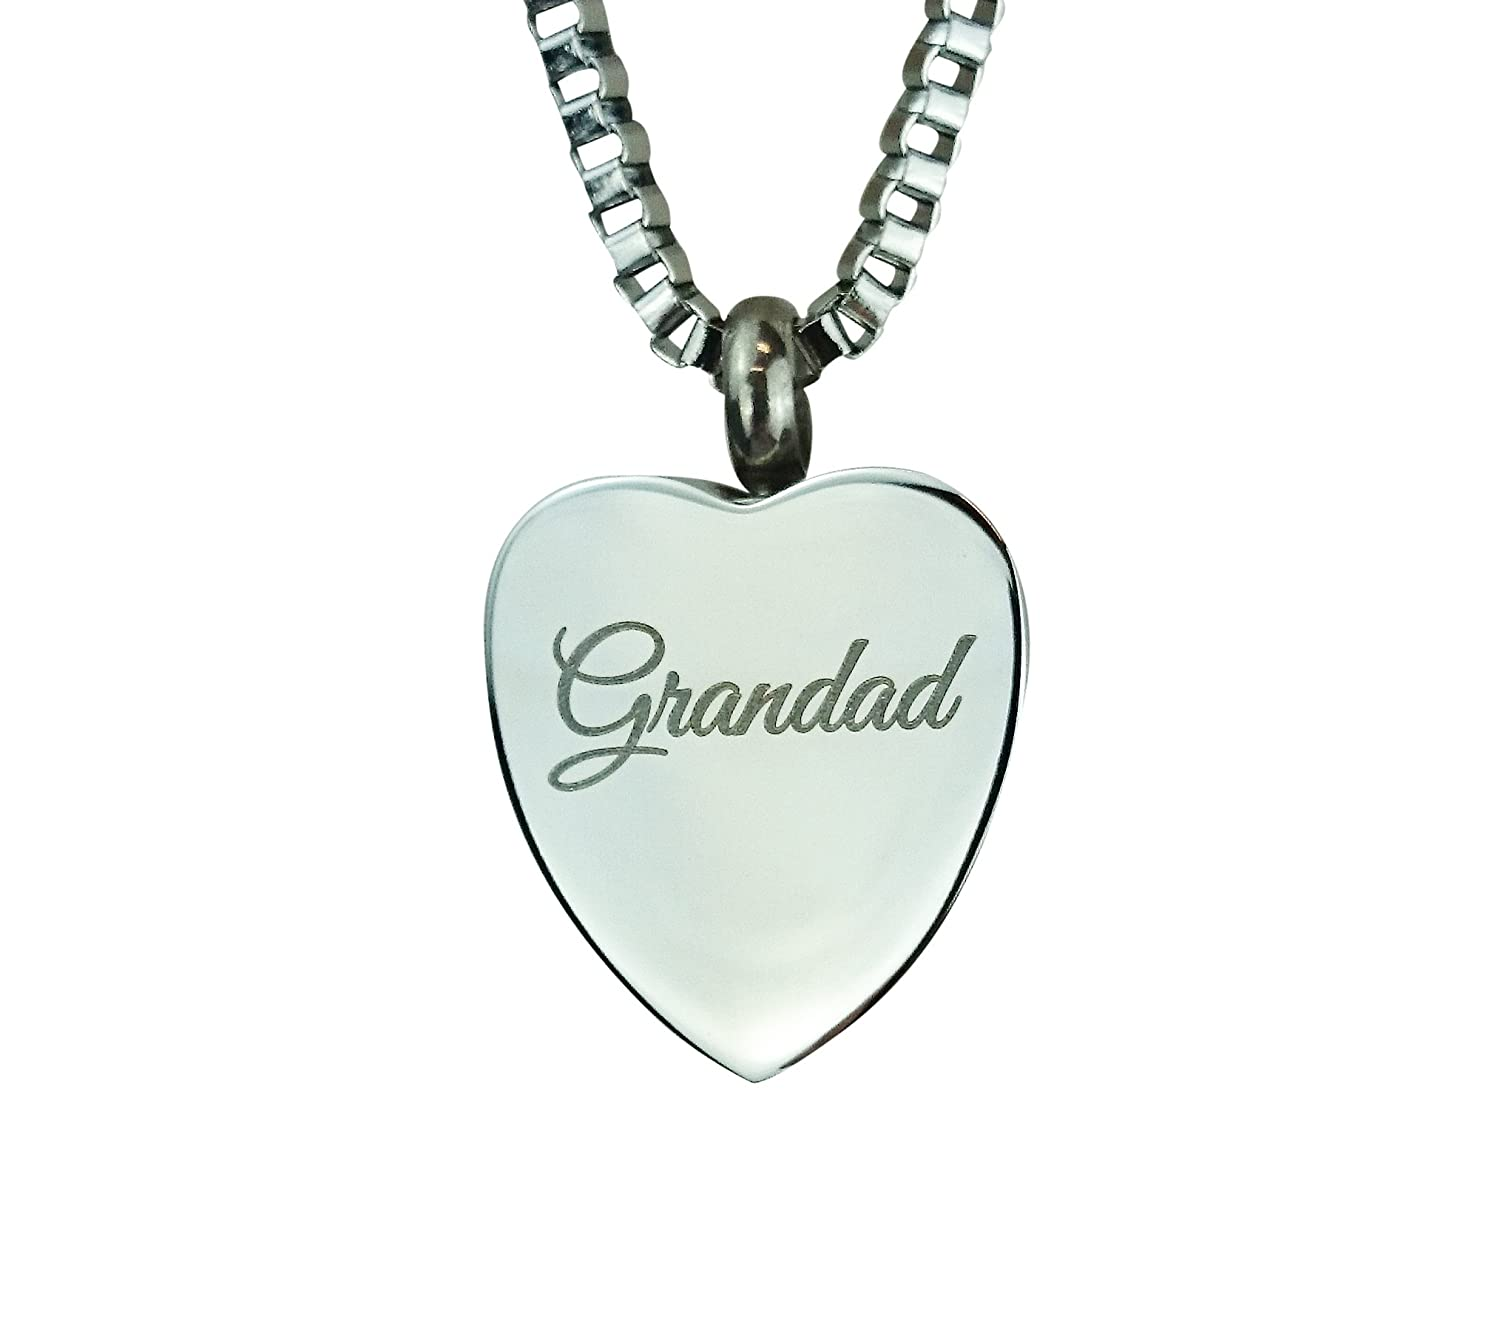 glass rae sterling cremation memorial tammy necklace ash charm product